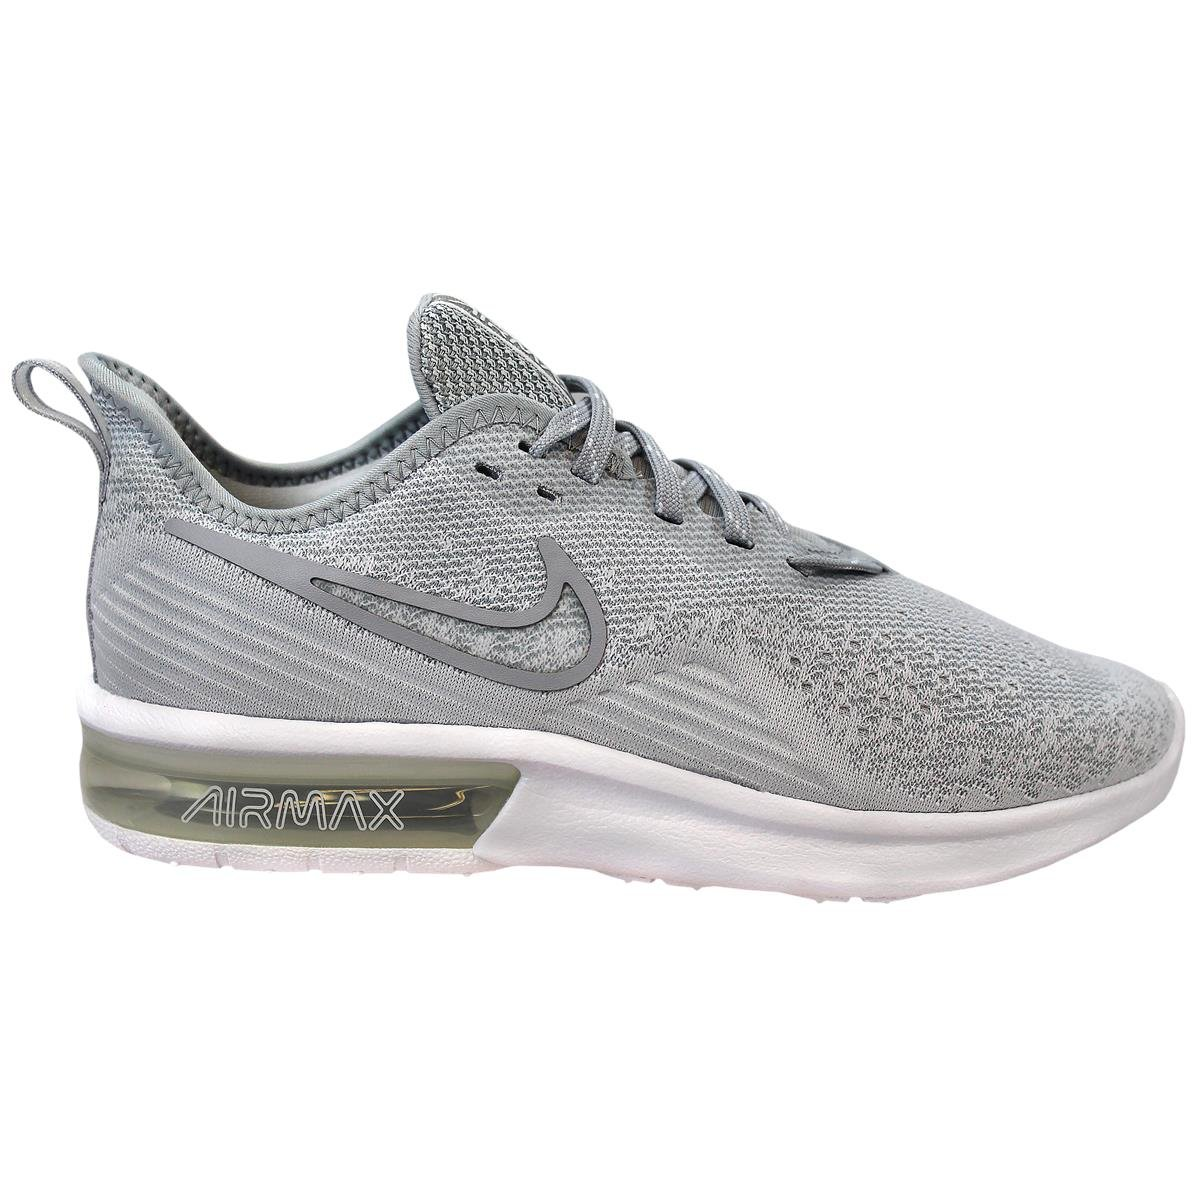 51170dcc592 TÊNIS NIKE AIR MAX SEQUENT 4 FEMININO